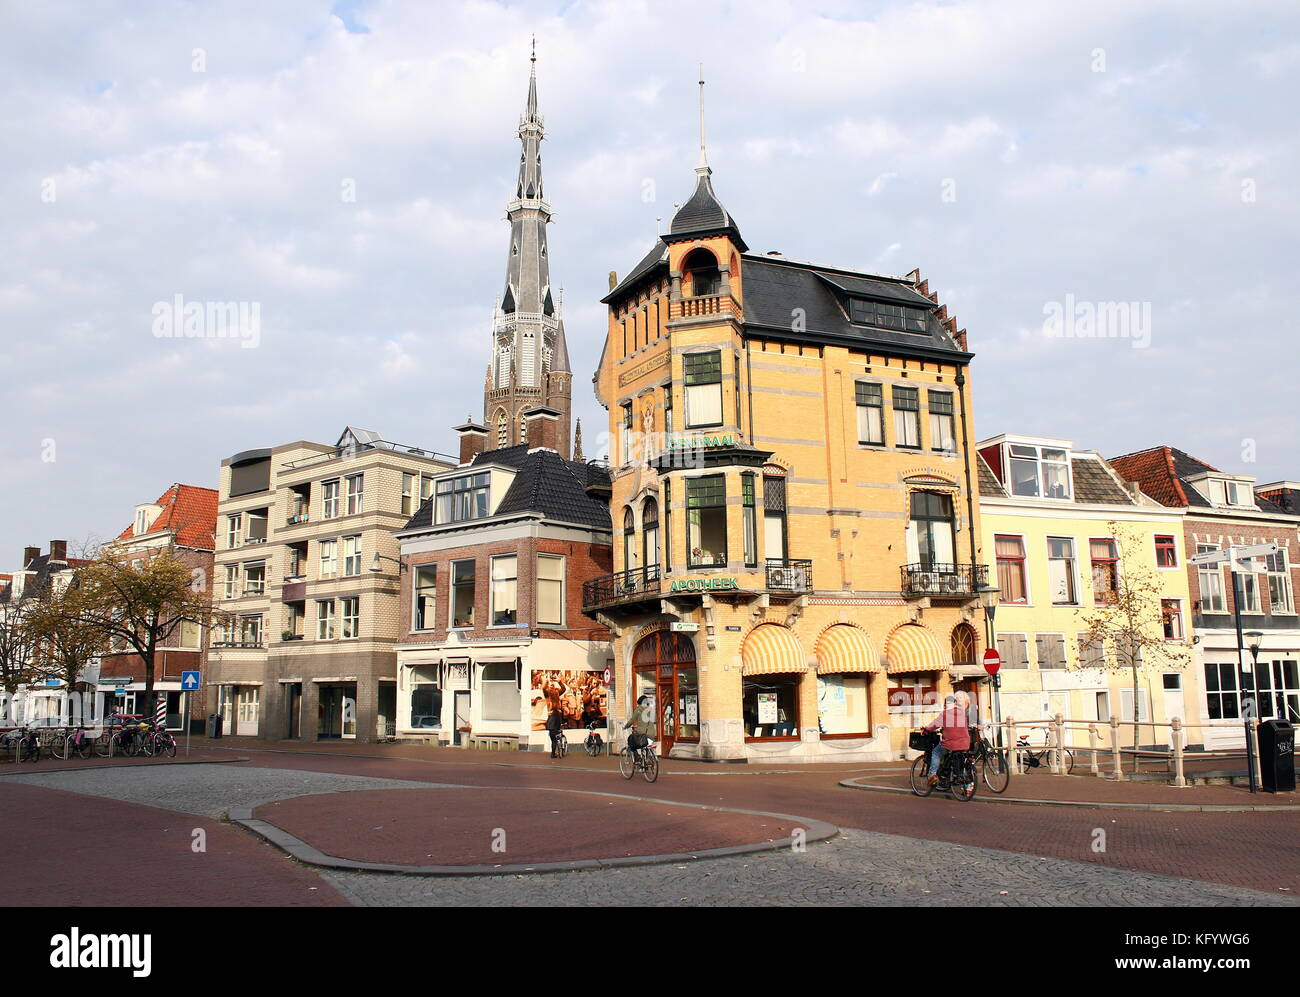 Art Nouveau Chemist shop at Voorstreek in Leeuwarden, The Netherlands, with tower of the church of St. Boniface - Stock Image